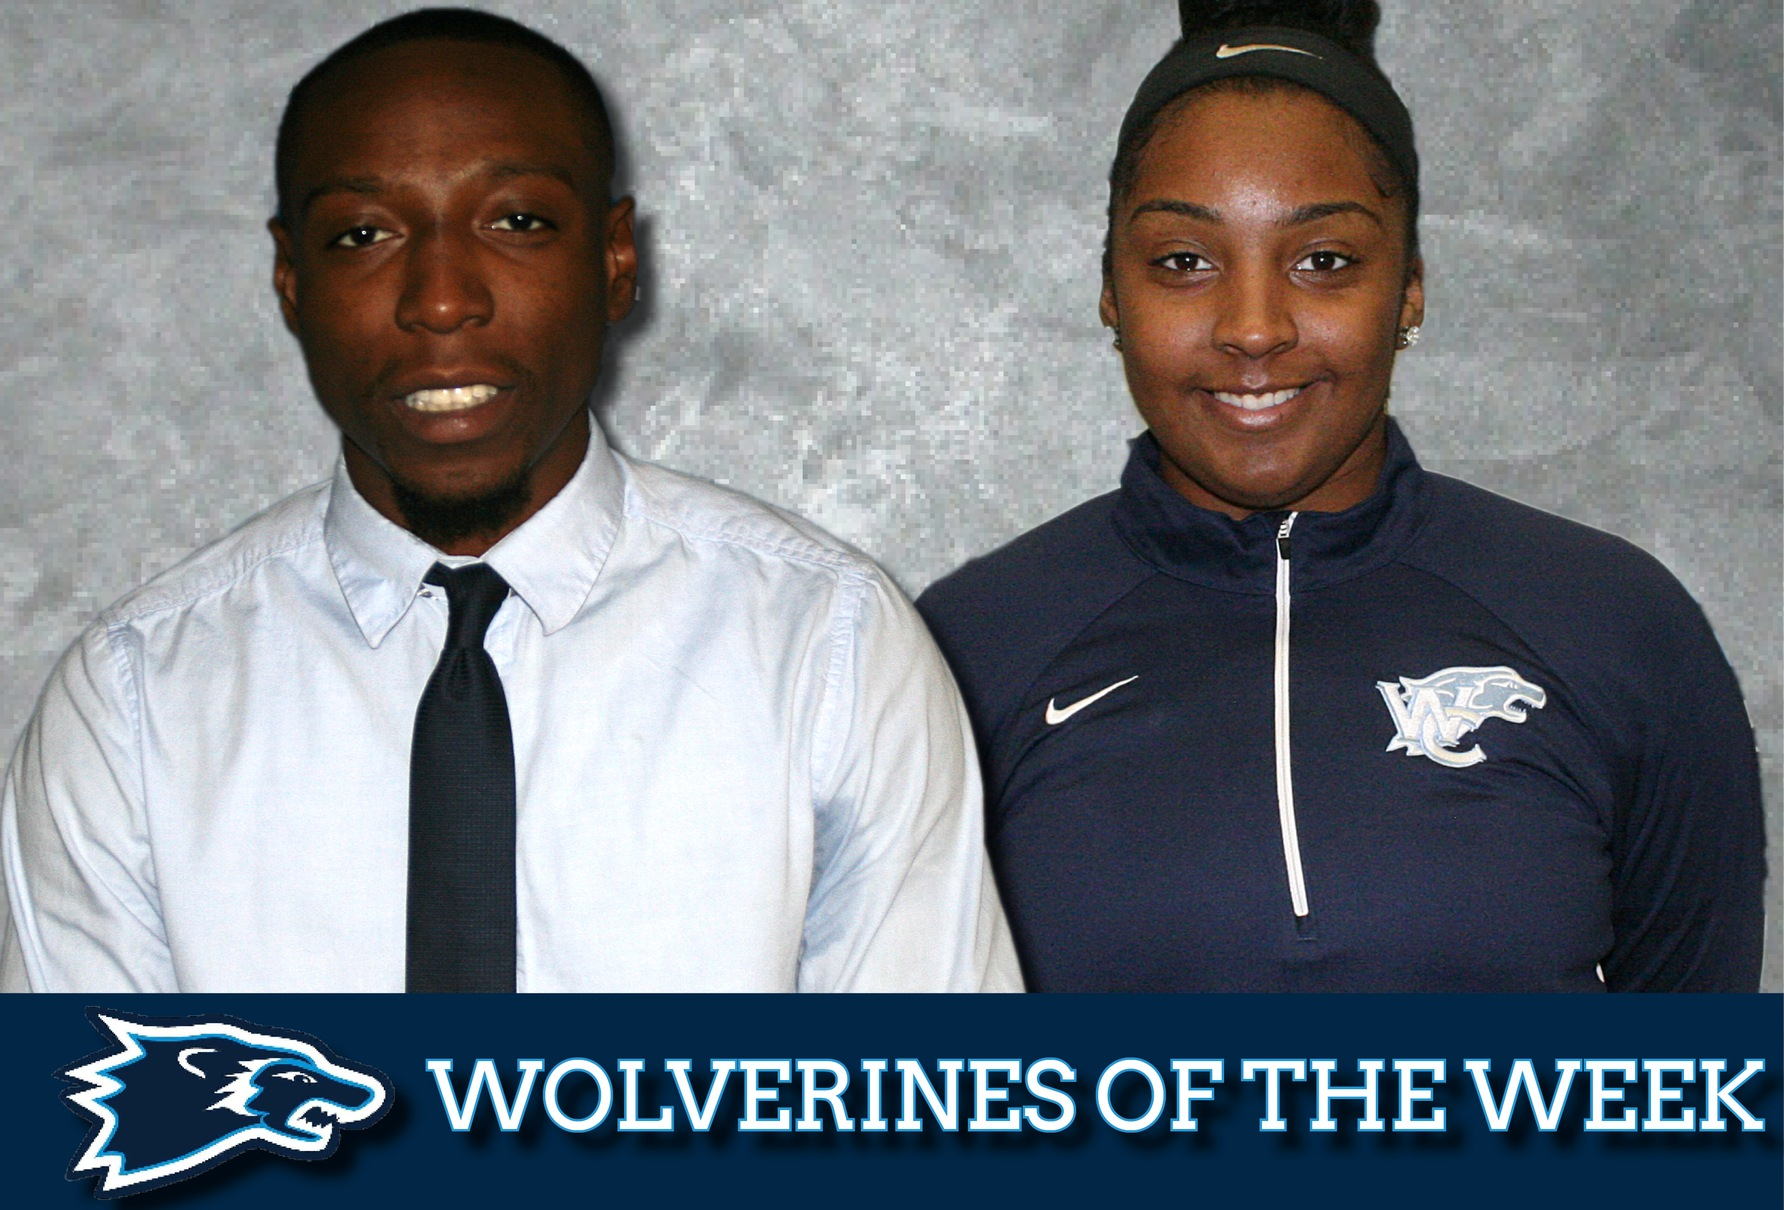 Johnson, Lawson named Wolverines of the Week